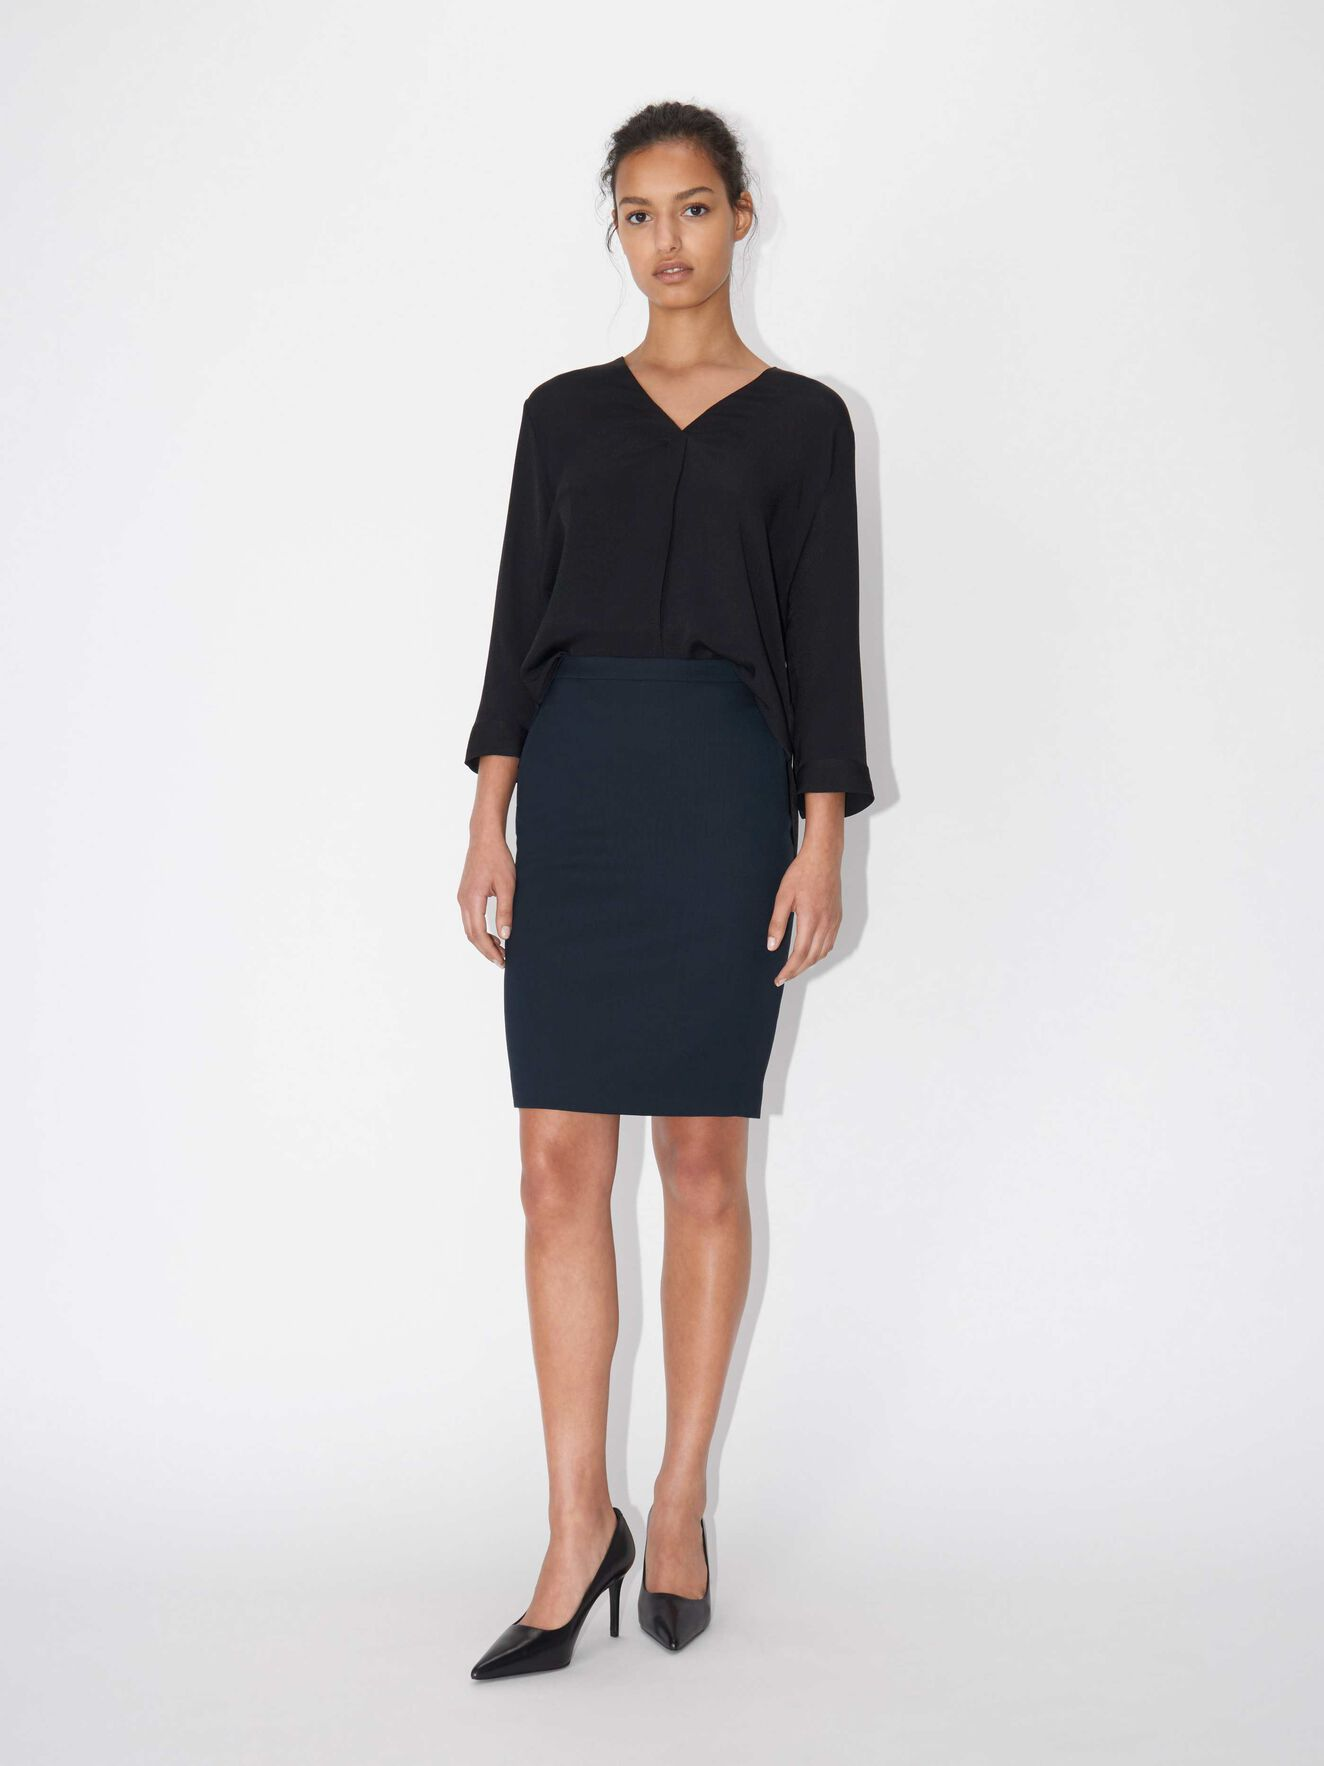 Erene skirt in Peacoat Blue from Tiger of Sweden